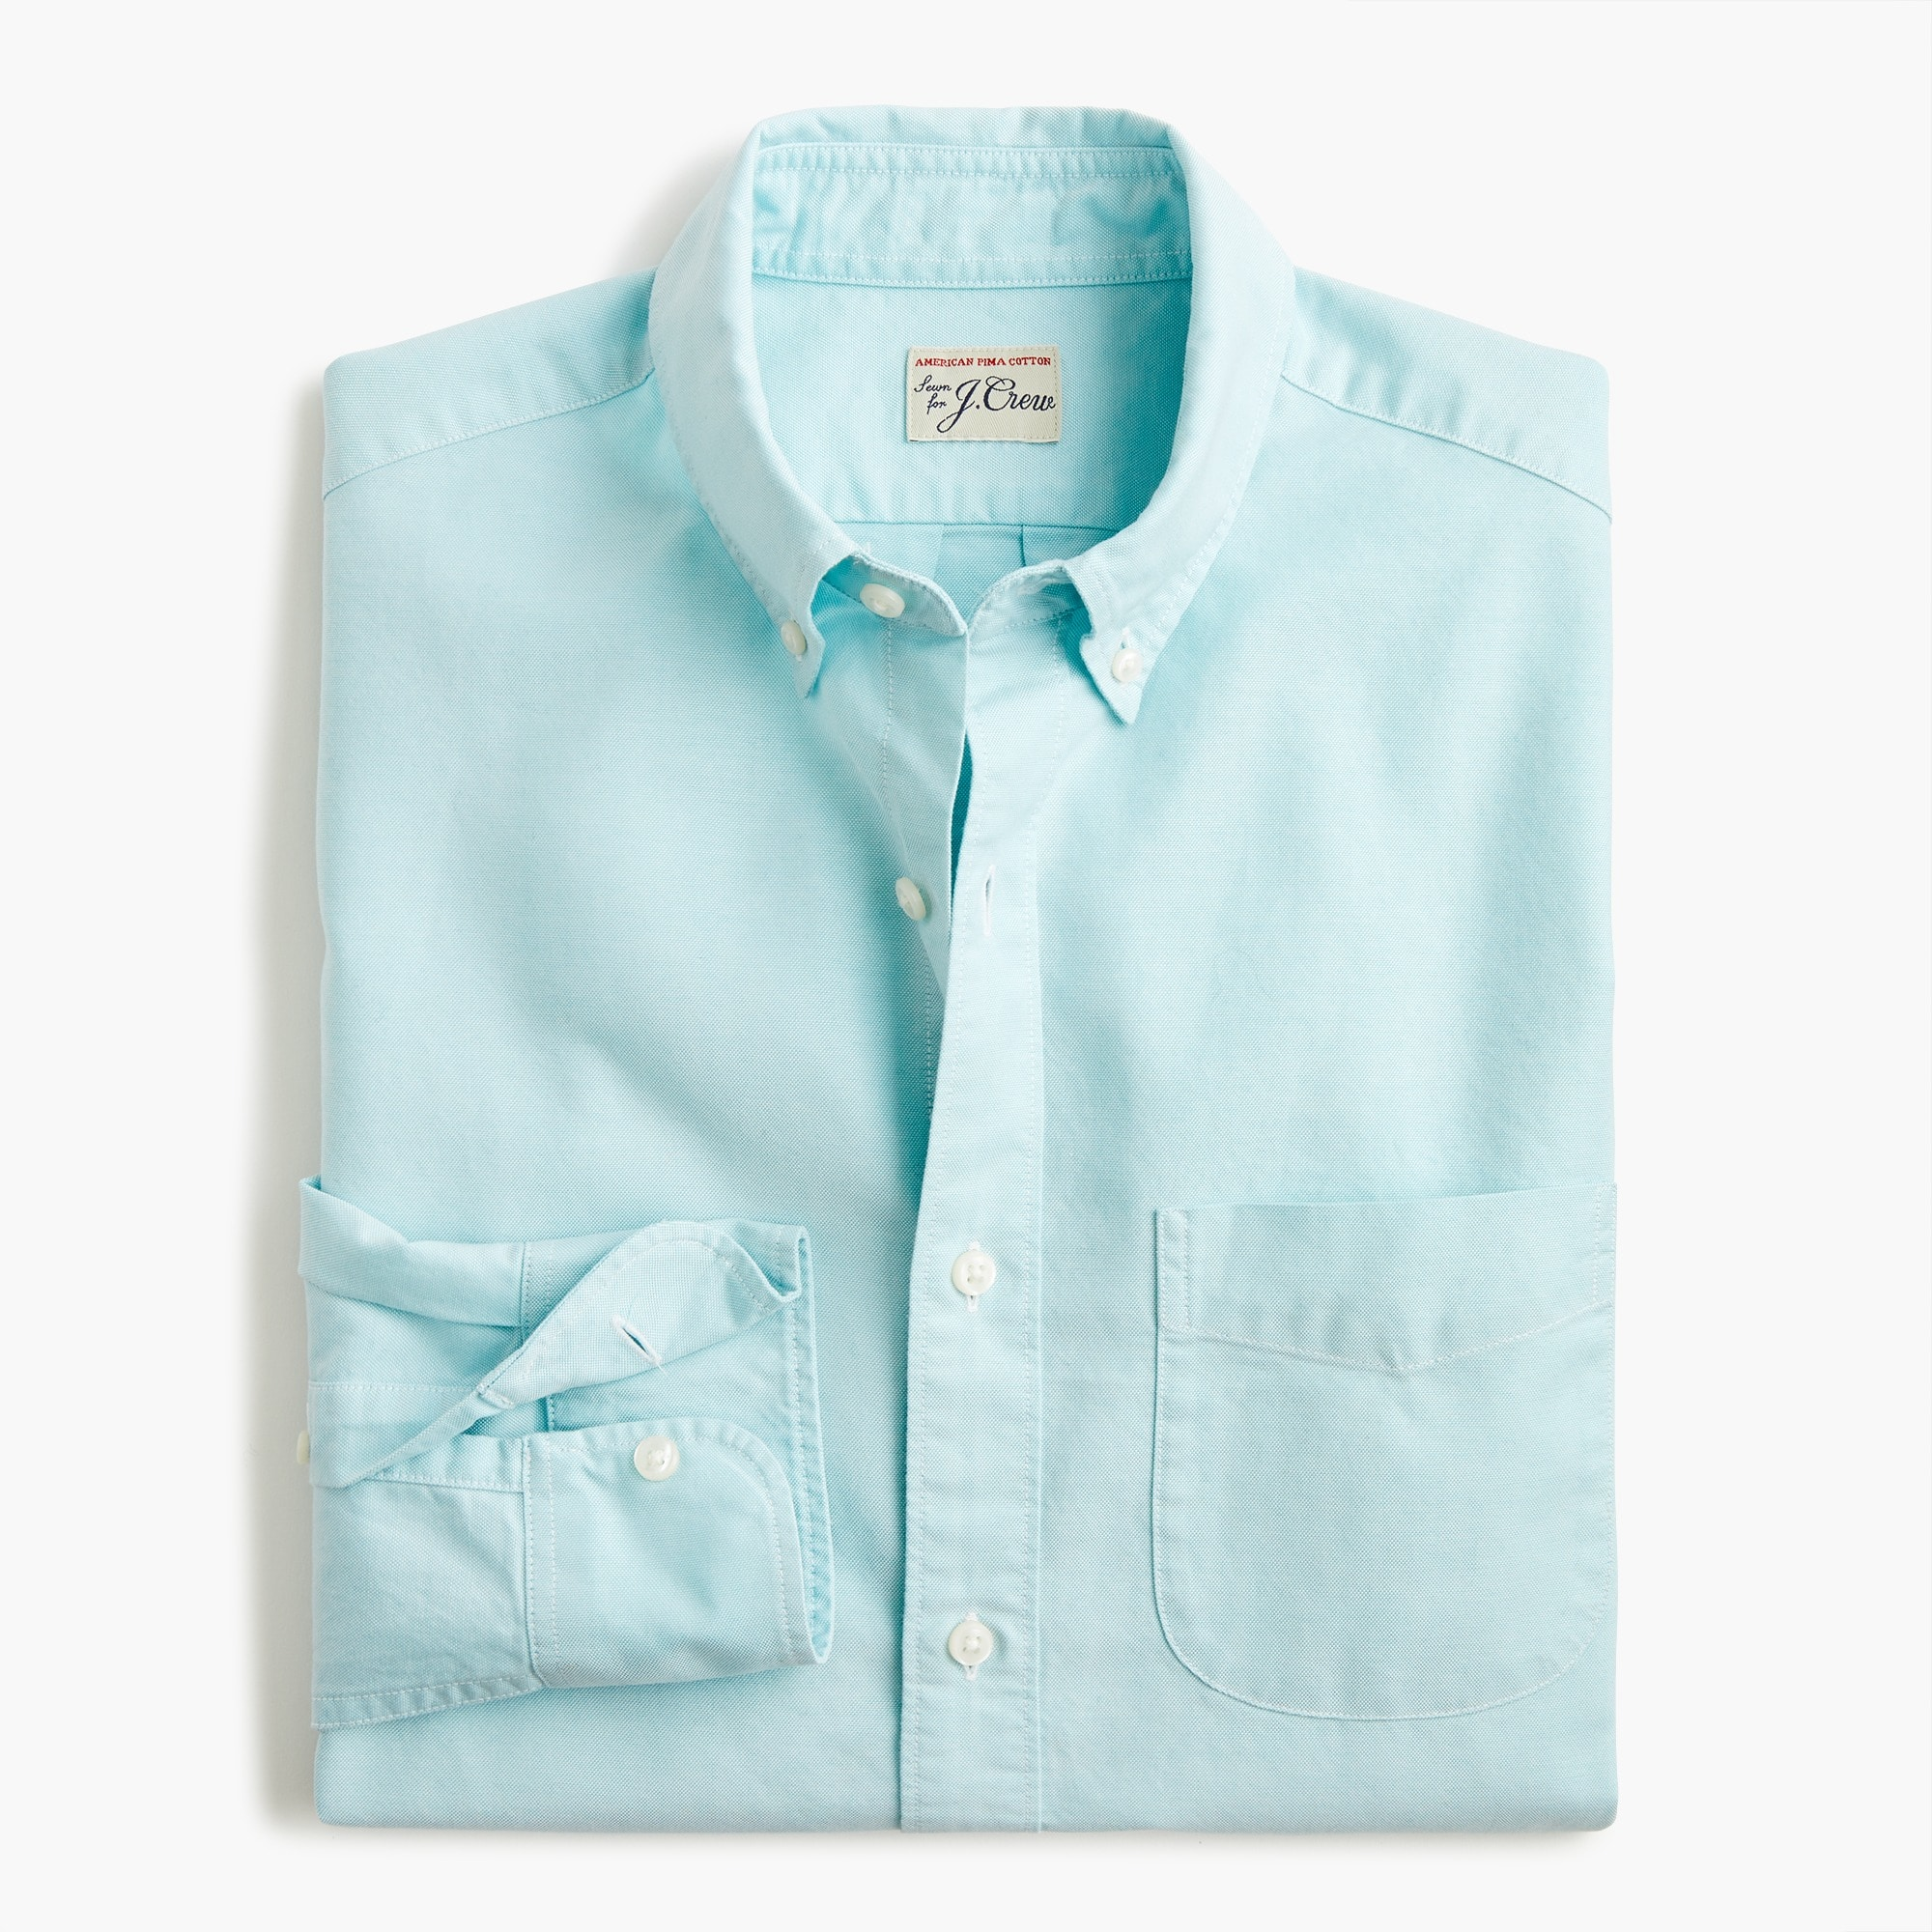 Slim American Pima cotton oxford shirt with mechanical stretch